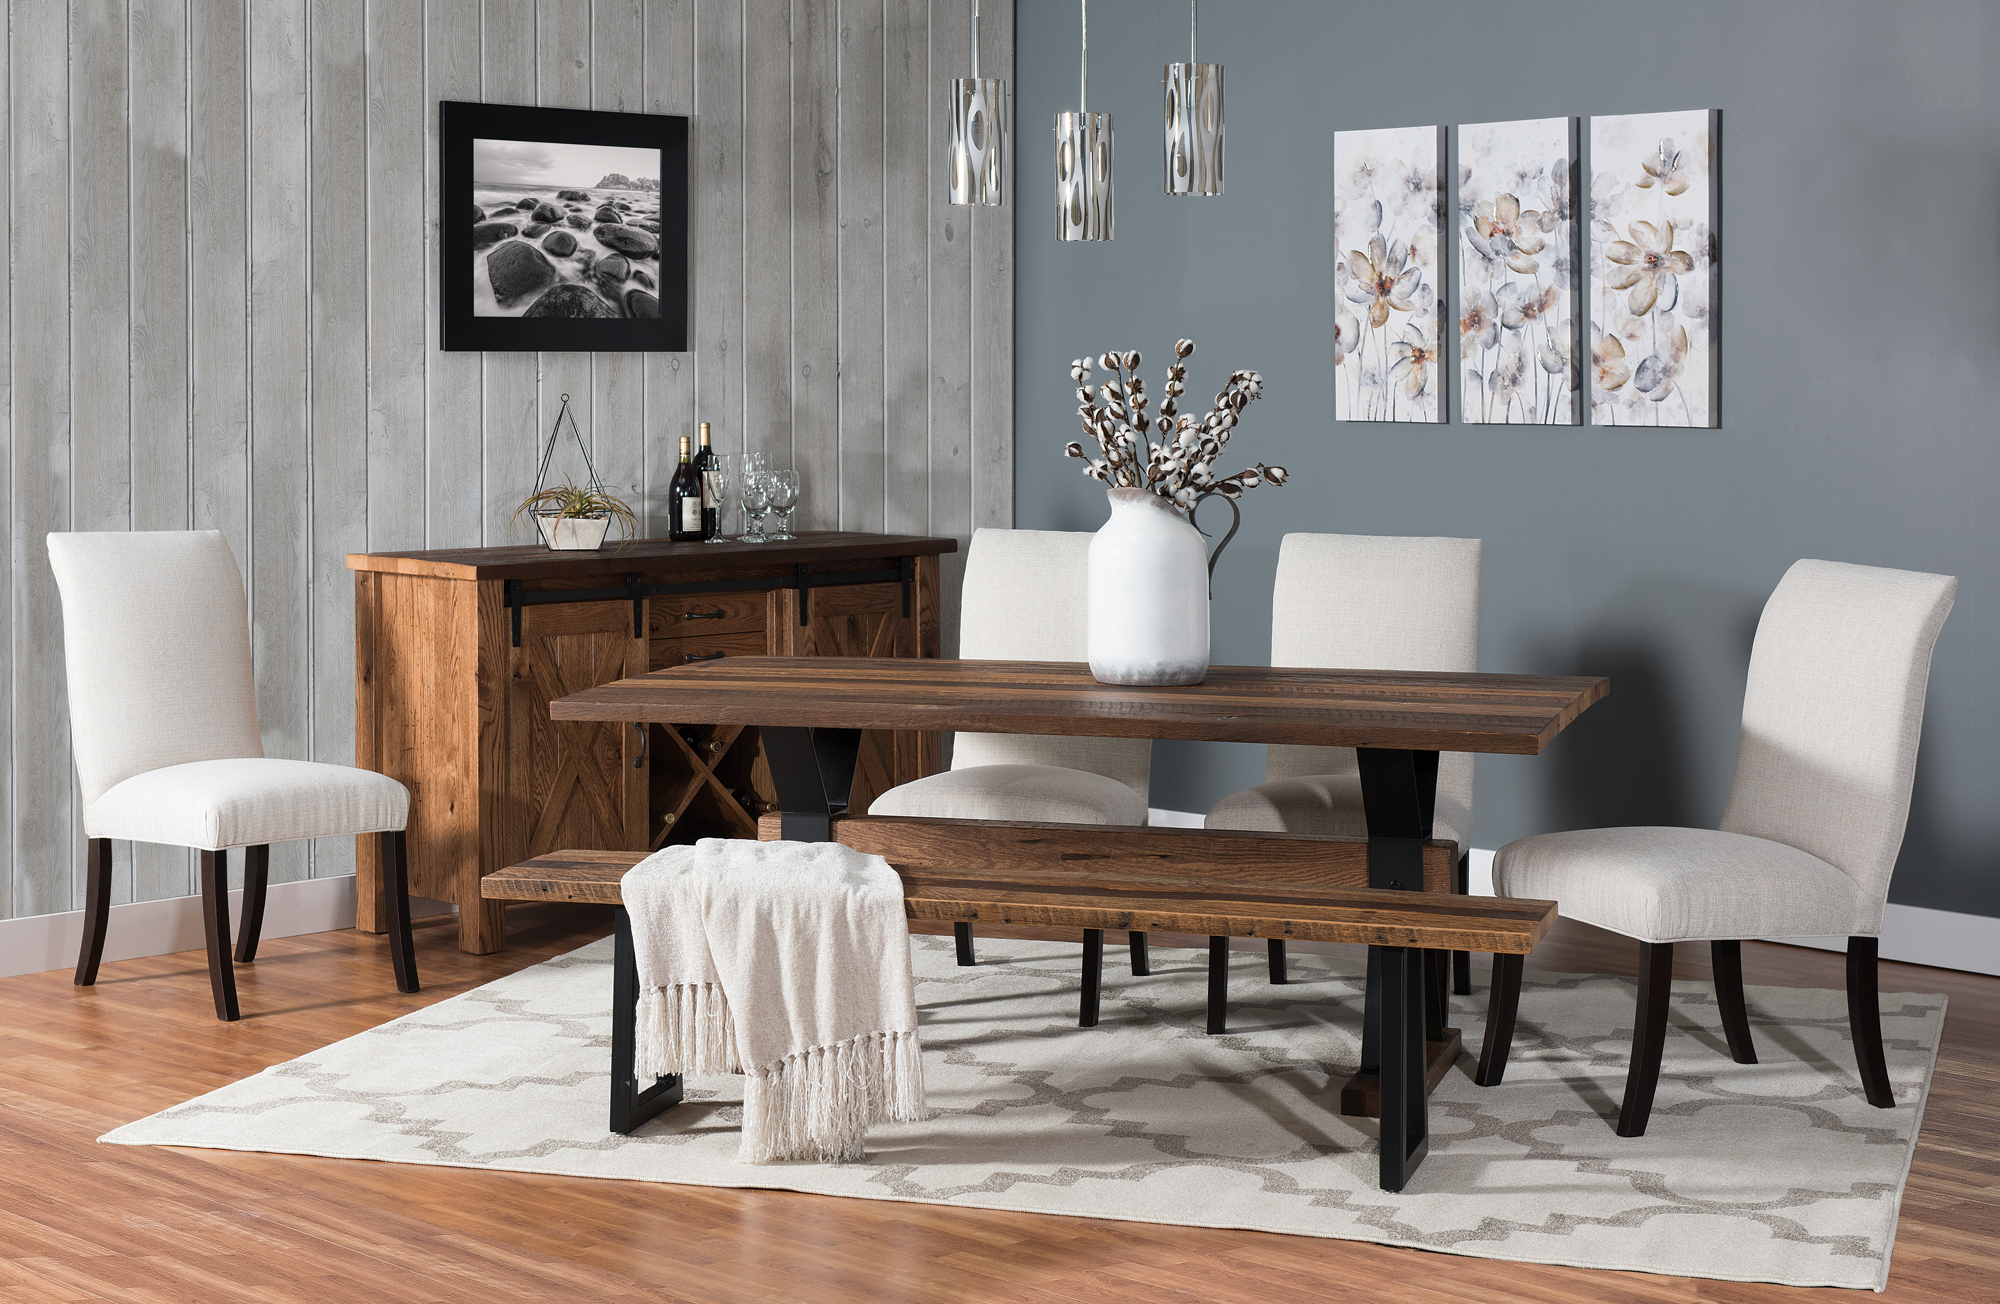 trestle dining room tables   Barnloft Trestle Dining Table   Amish Trestle Table ...